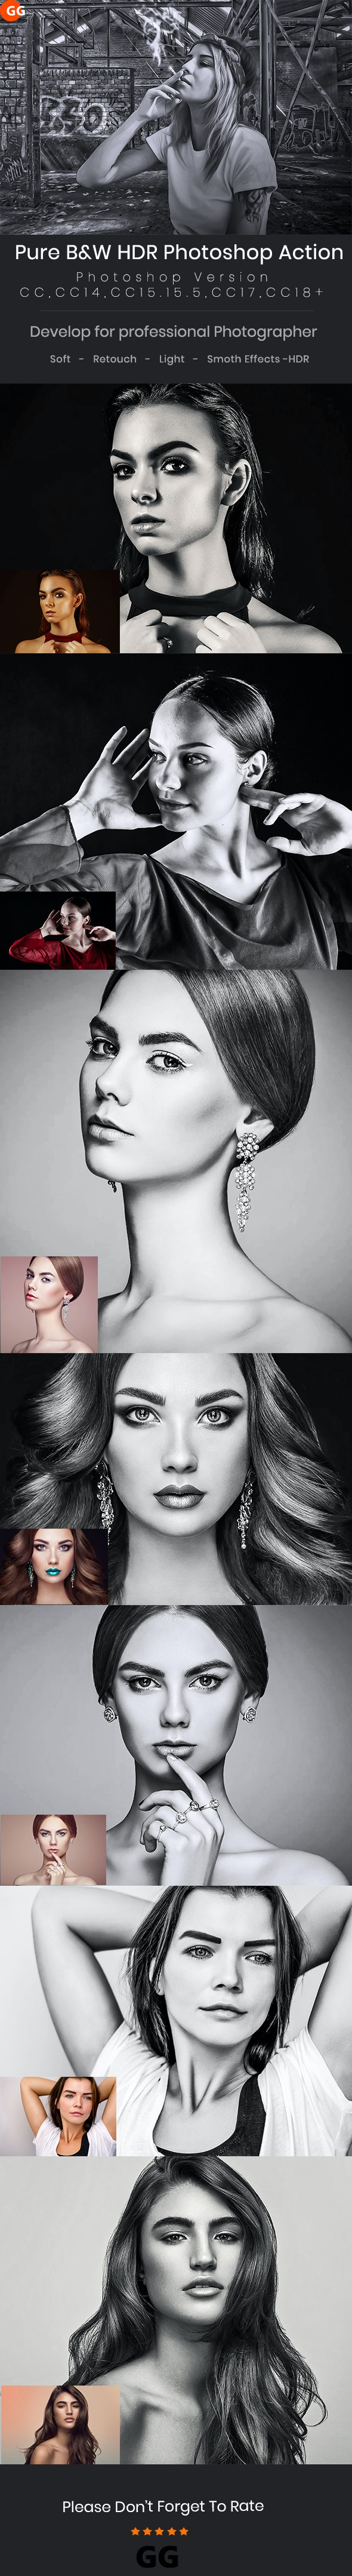 Pure B&W HDR Photoshop Action - Photo Effects Actions